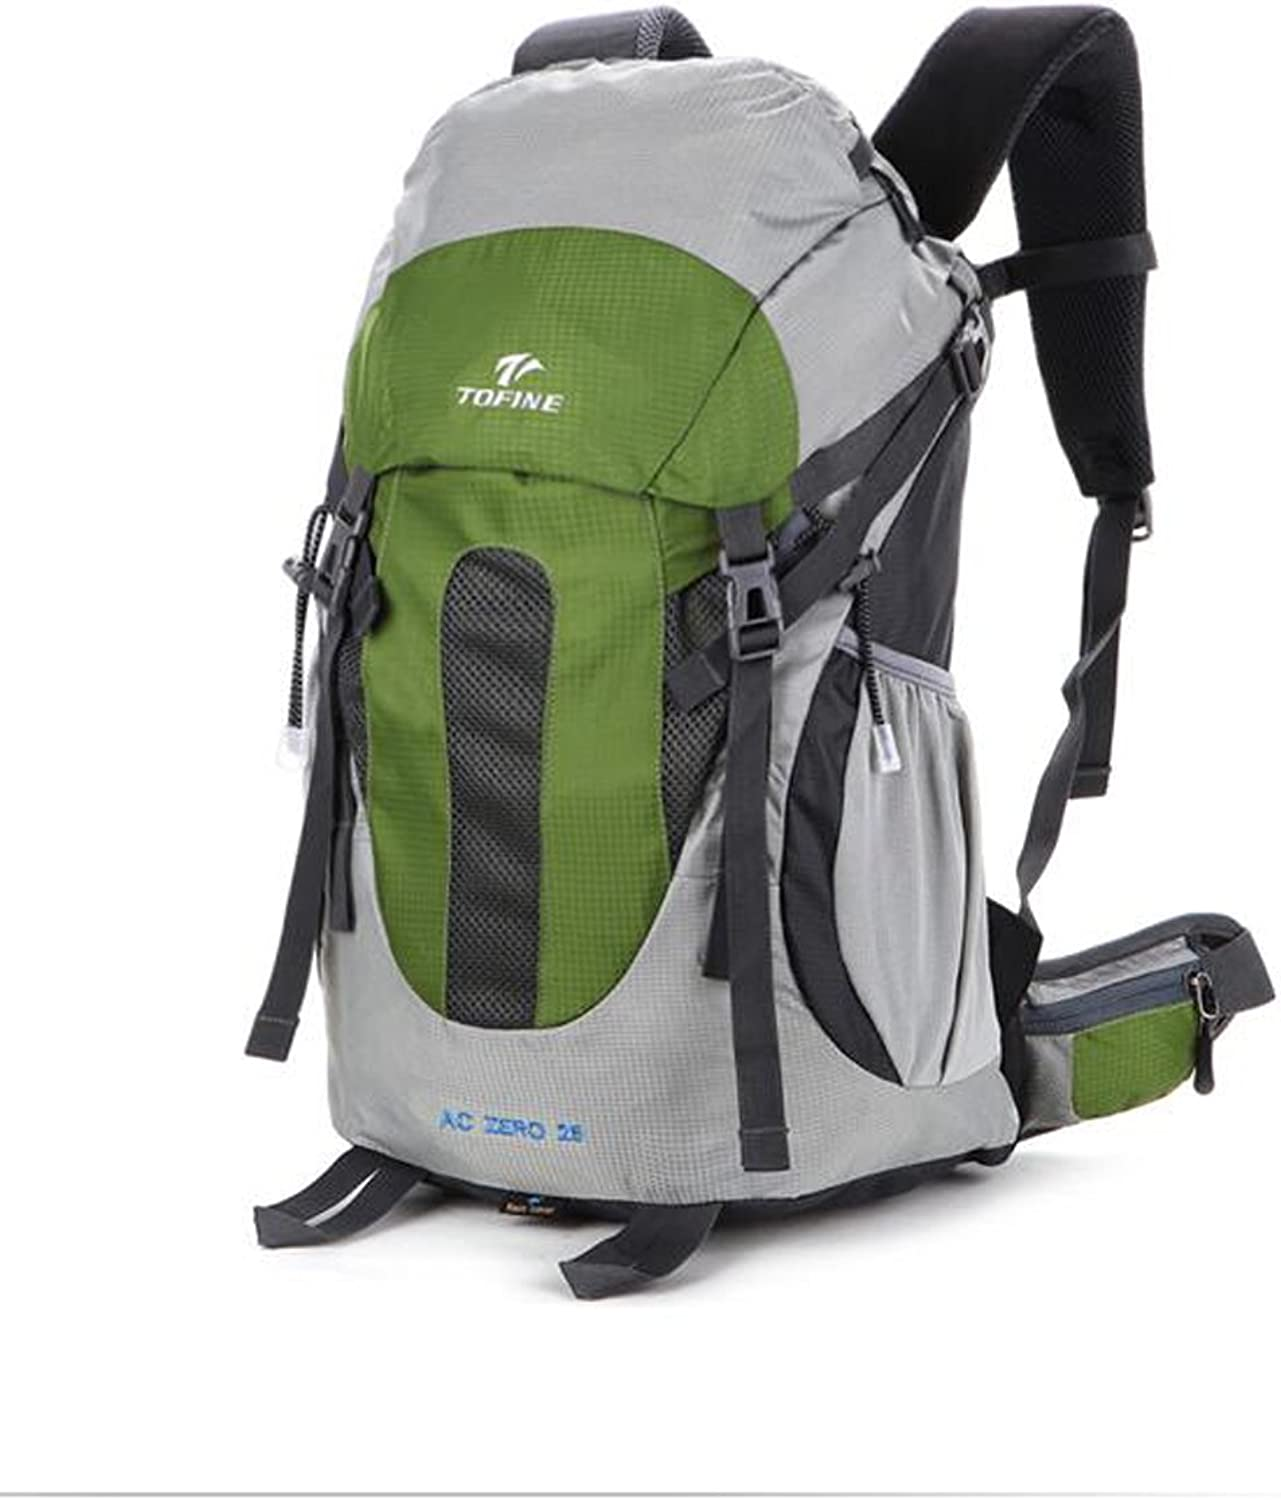 TOFINE Traveling Daypack Lightweight Backpacking Gear Rain Cover Green 25 Liter